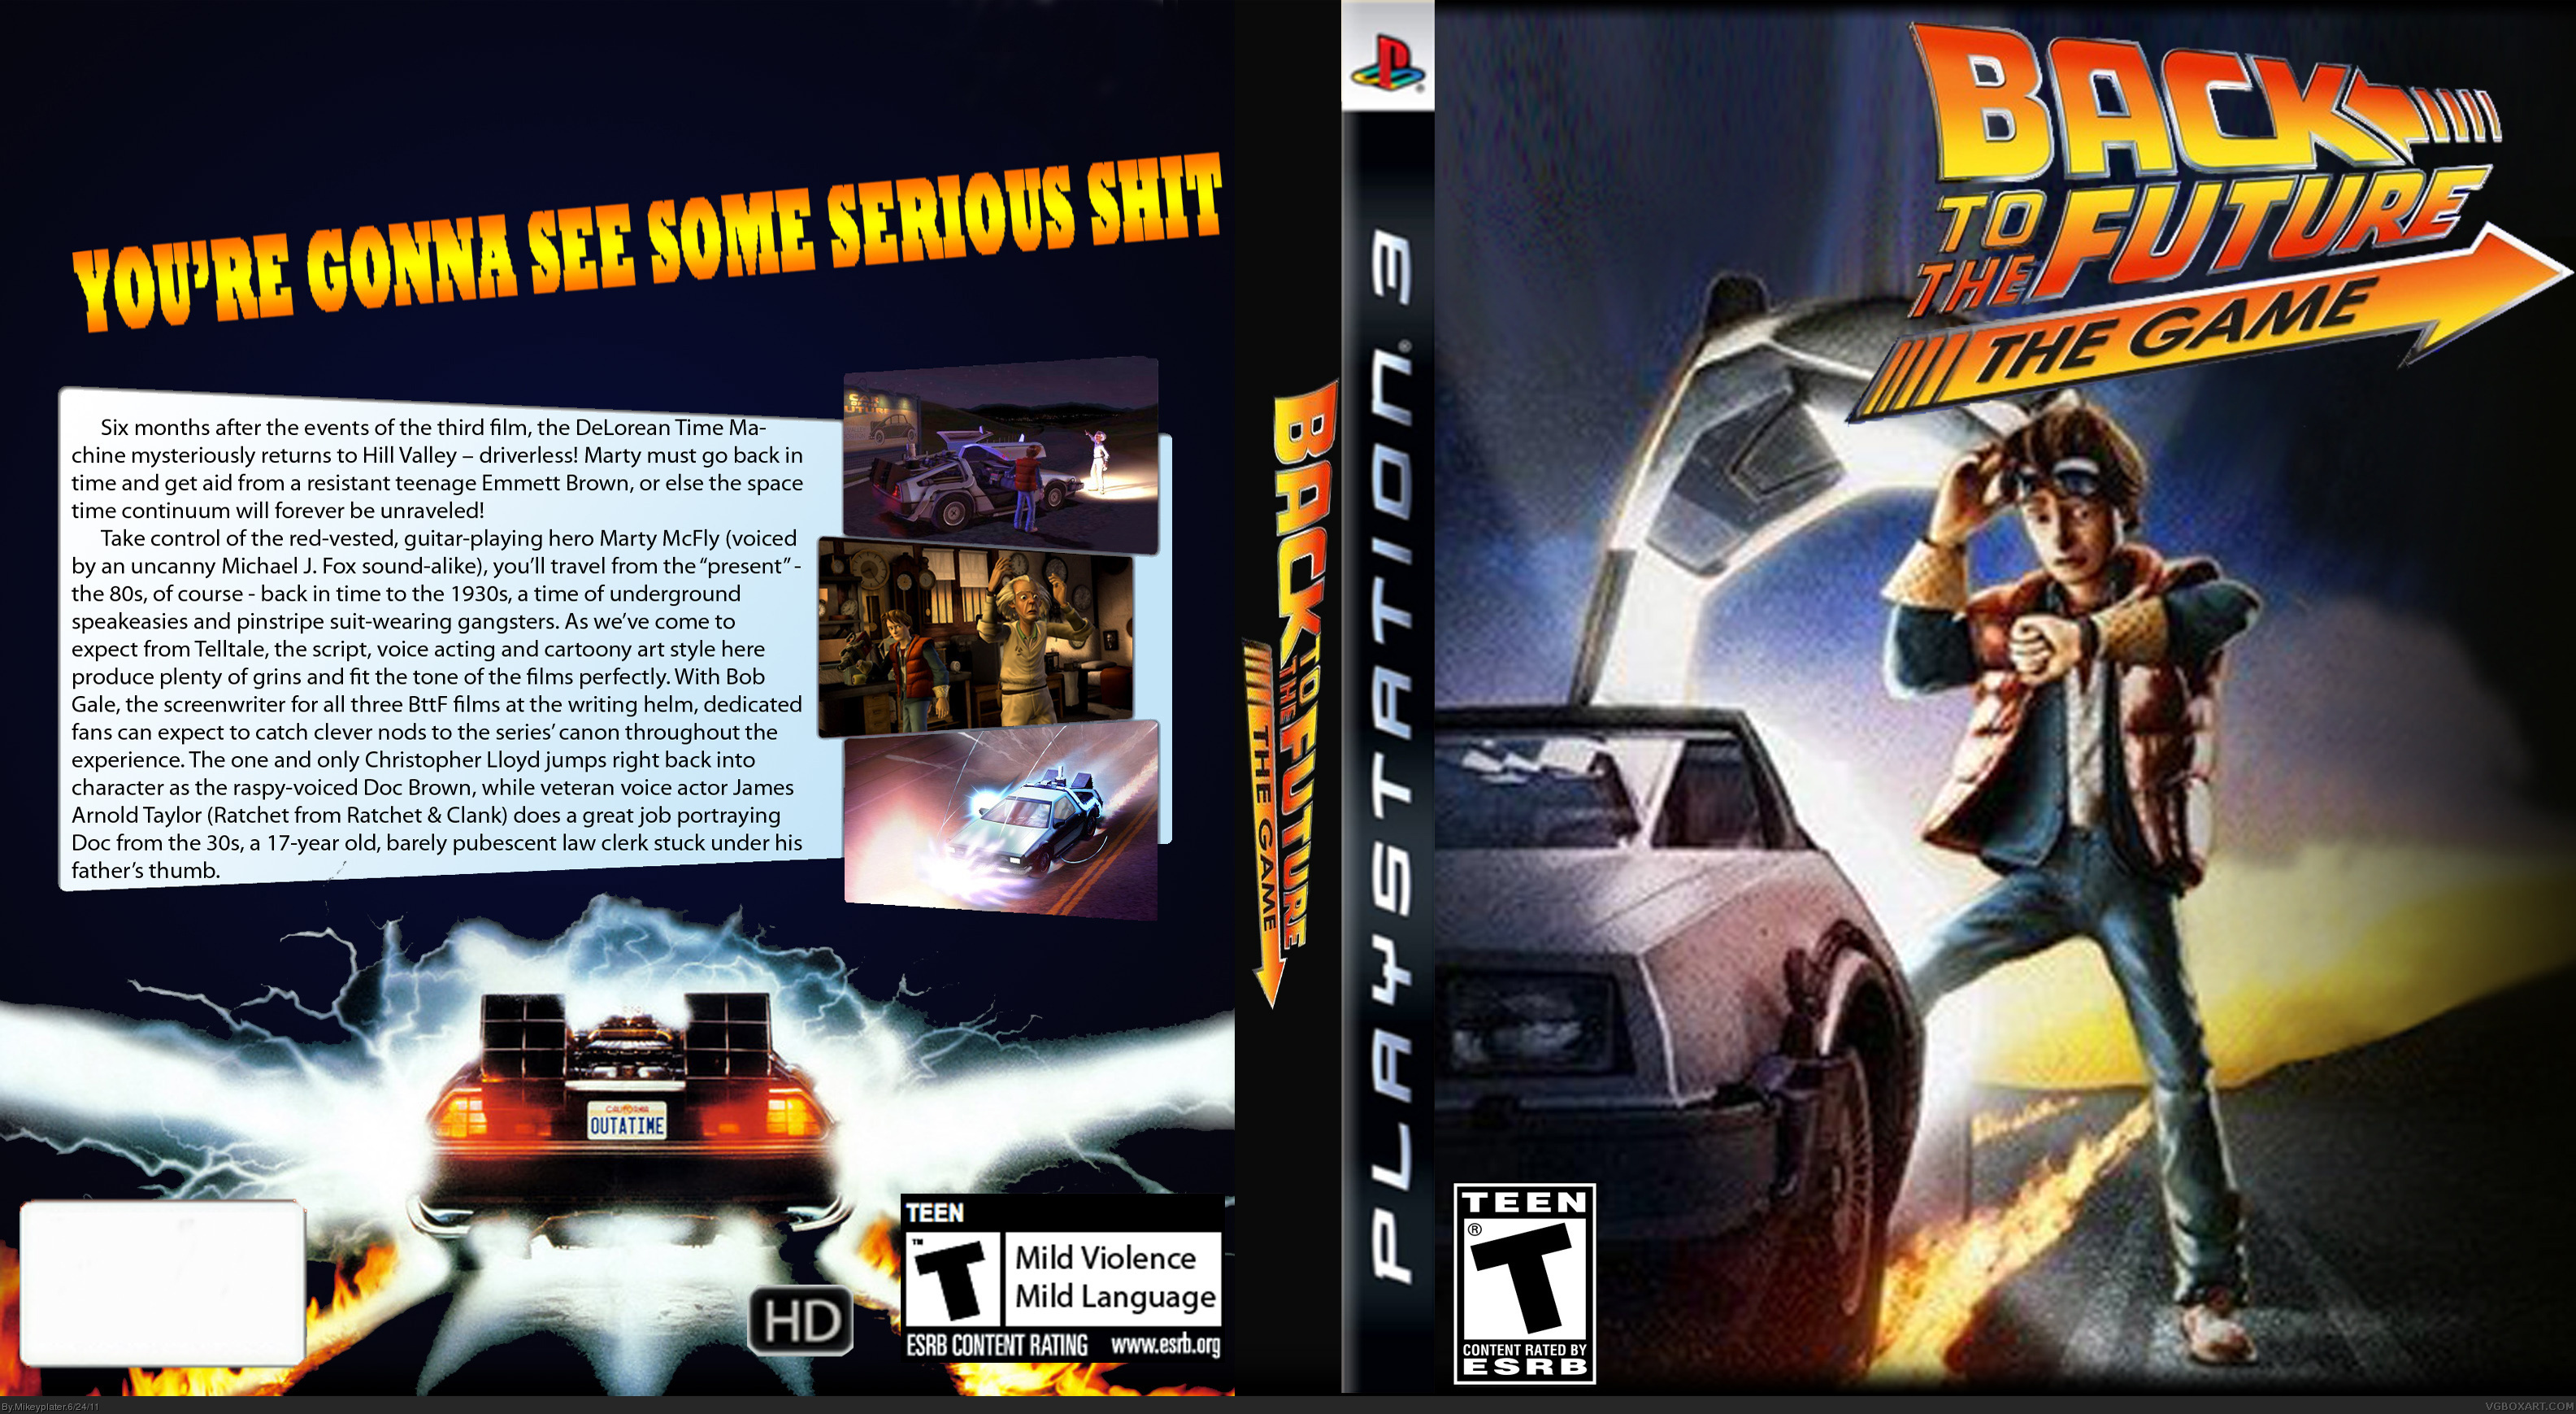 Back To The Future: The Video Game box cover